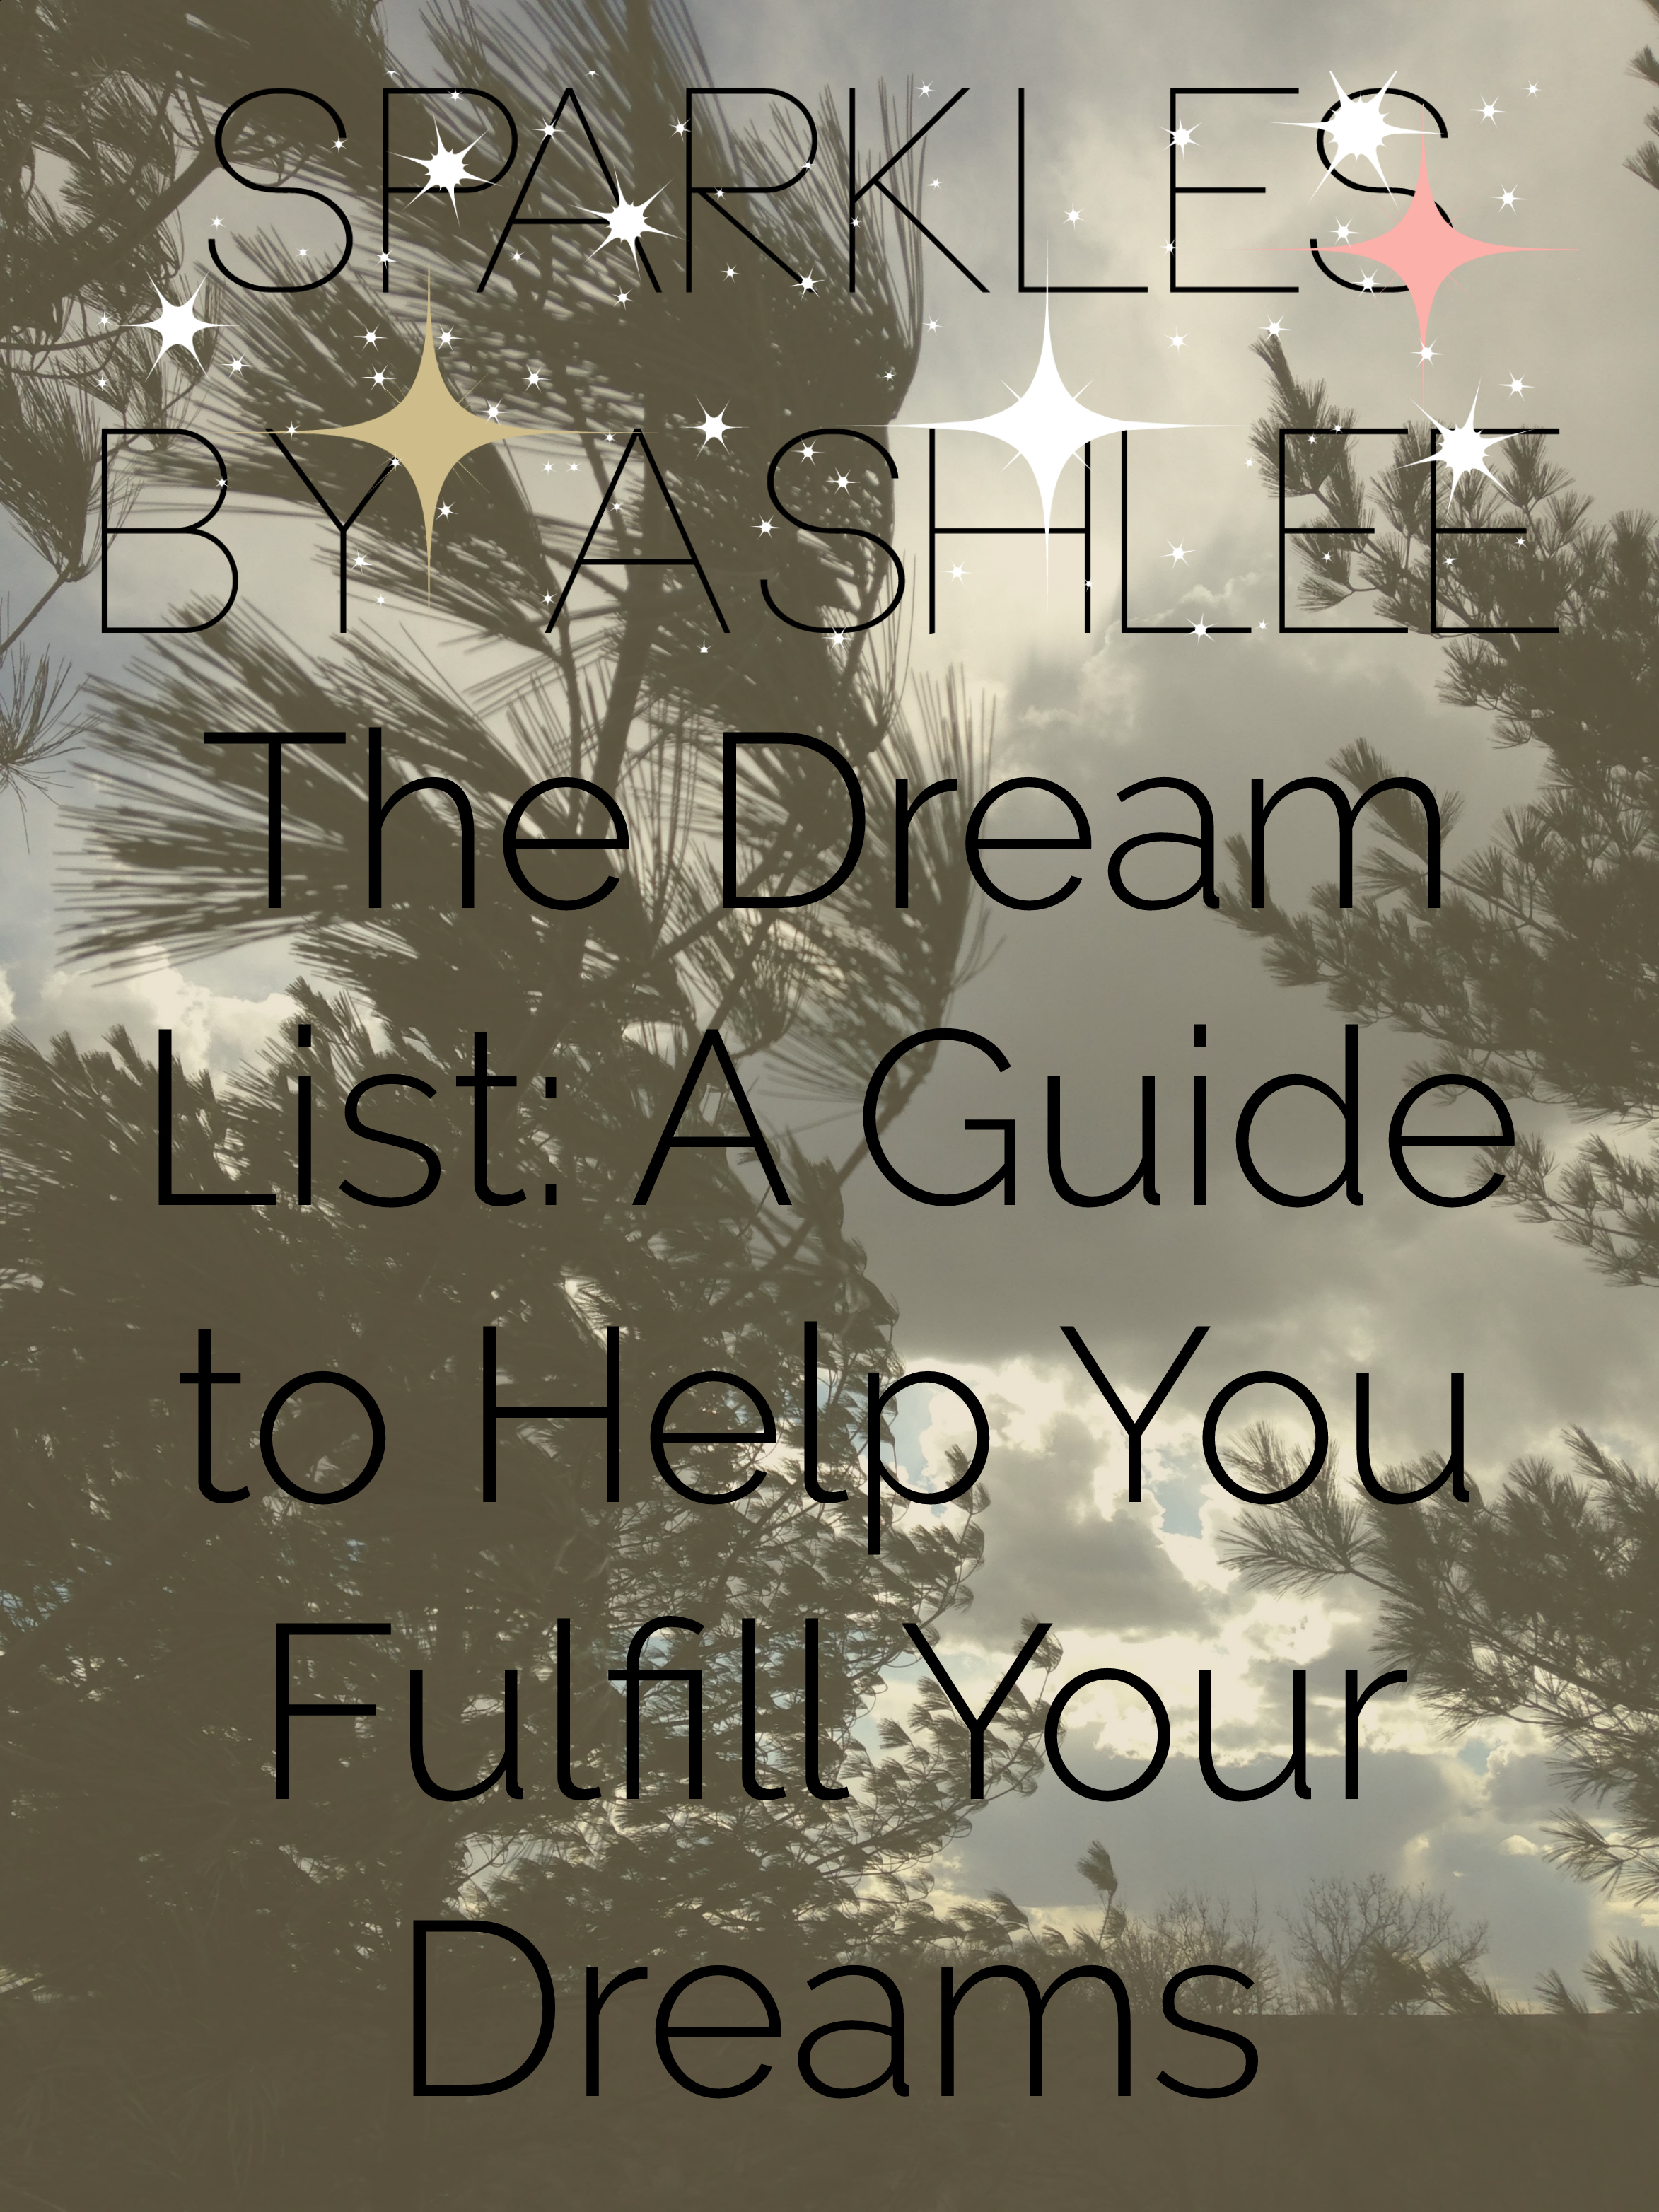 The-Dream-List-A-Guide-to-Help-You-Fulfill-Your-Dreams-Sparkles-by-Ashlee.jpg